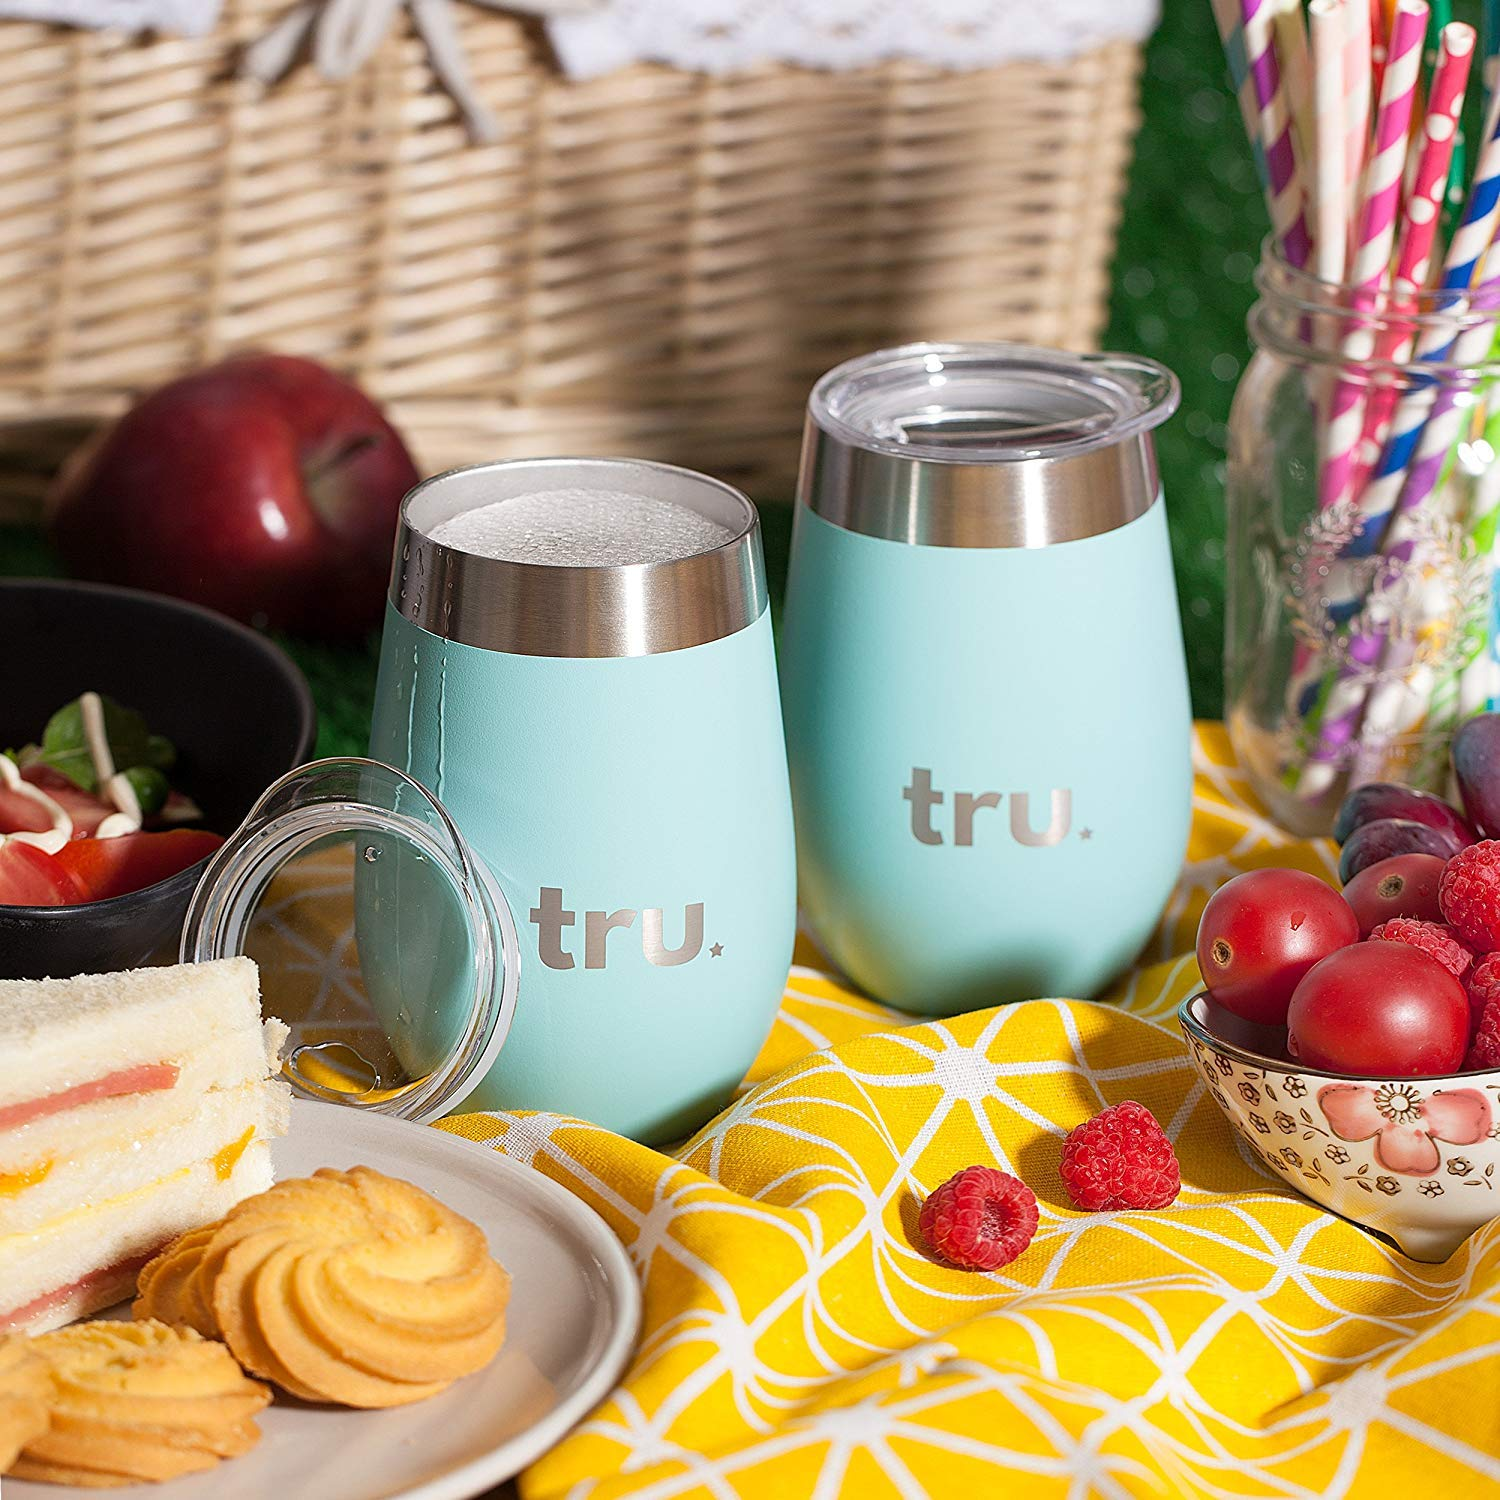 Outdoor Vacuum Insulated Wine Tumblers with Lids (Set of 2), Stainless Steel Glasses 12oz - Double Wall Stemless Metal Cup - Travel, Camping, Lightweight, Unbreakable, Portable, BPA Free by Tru Blu Steel (Image #5)